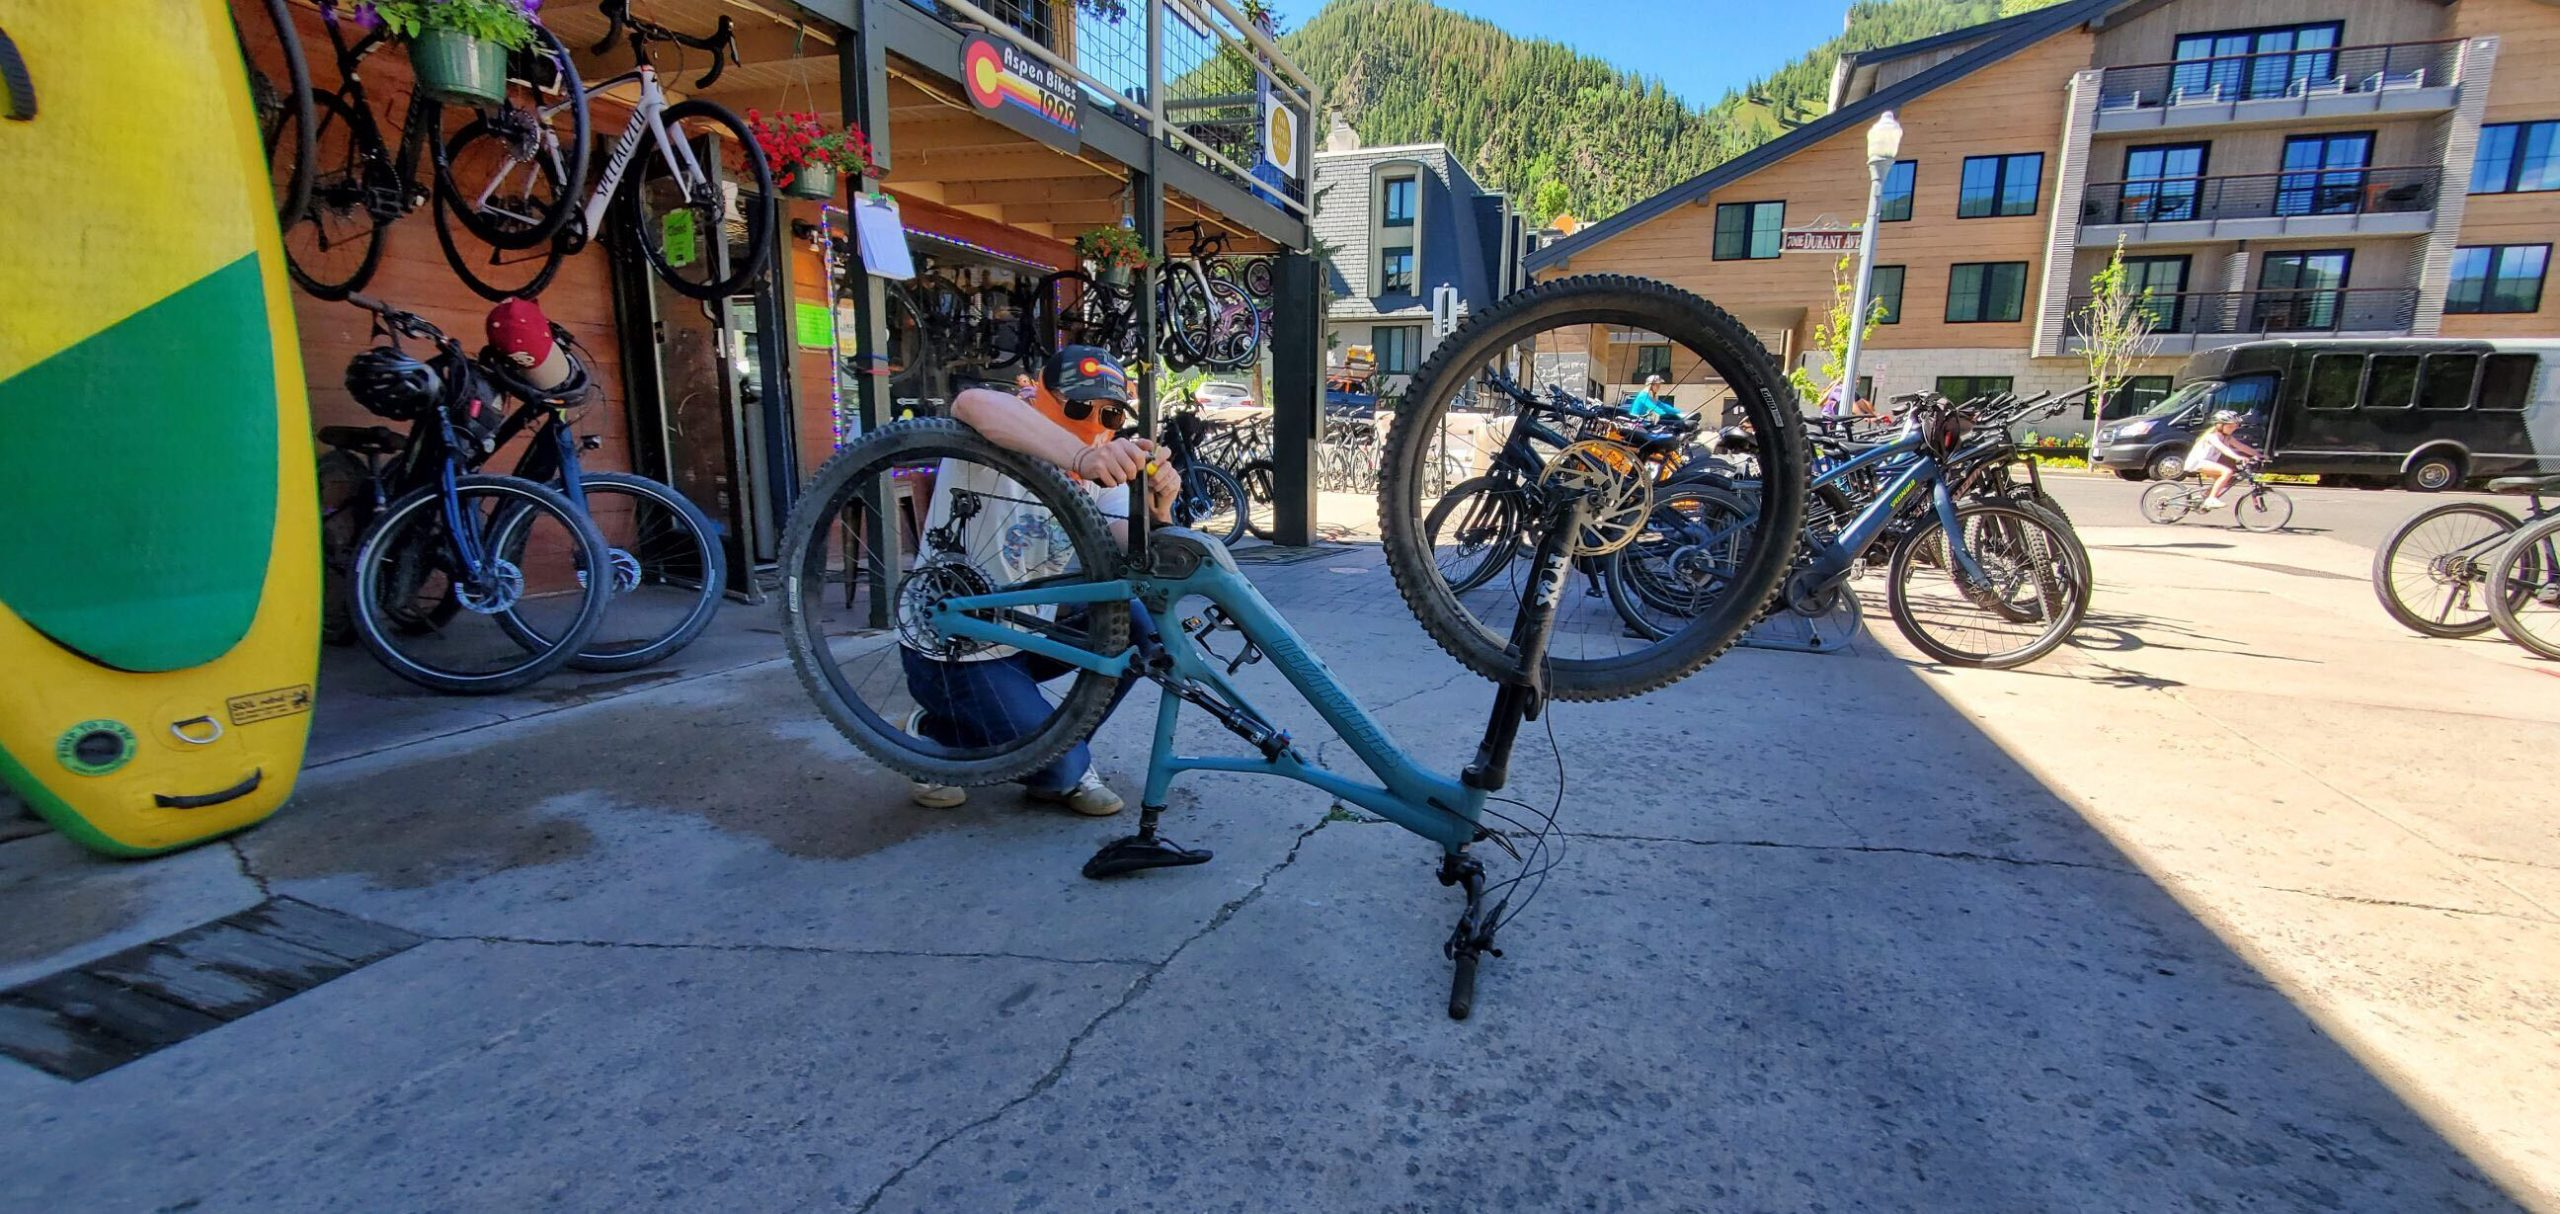 Blake Linehan puts pedals on a bike while working as a bike technician at Stapleton Ski/Aspen Bikes in Aspen, Colorado July 7, 2020.